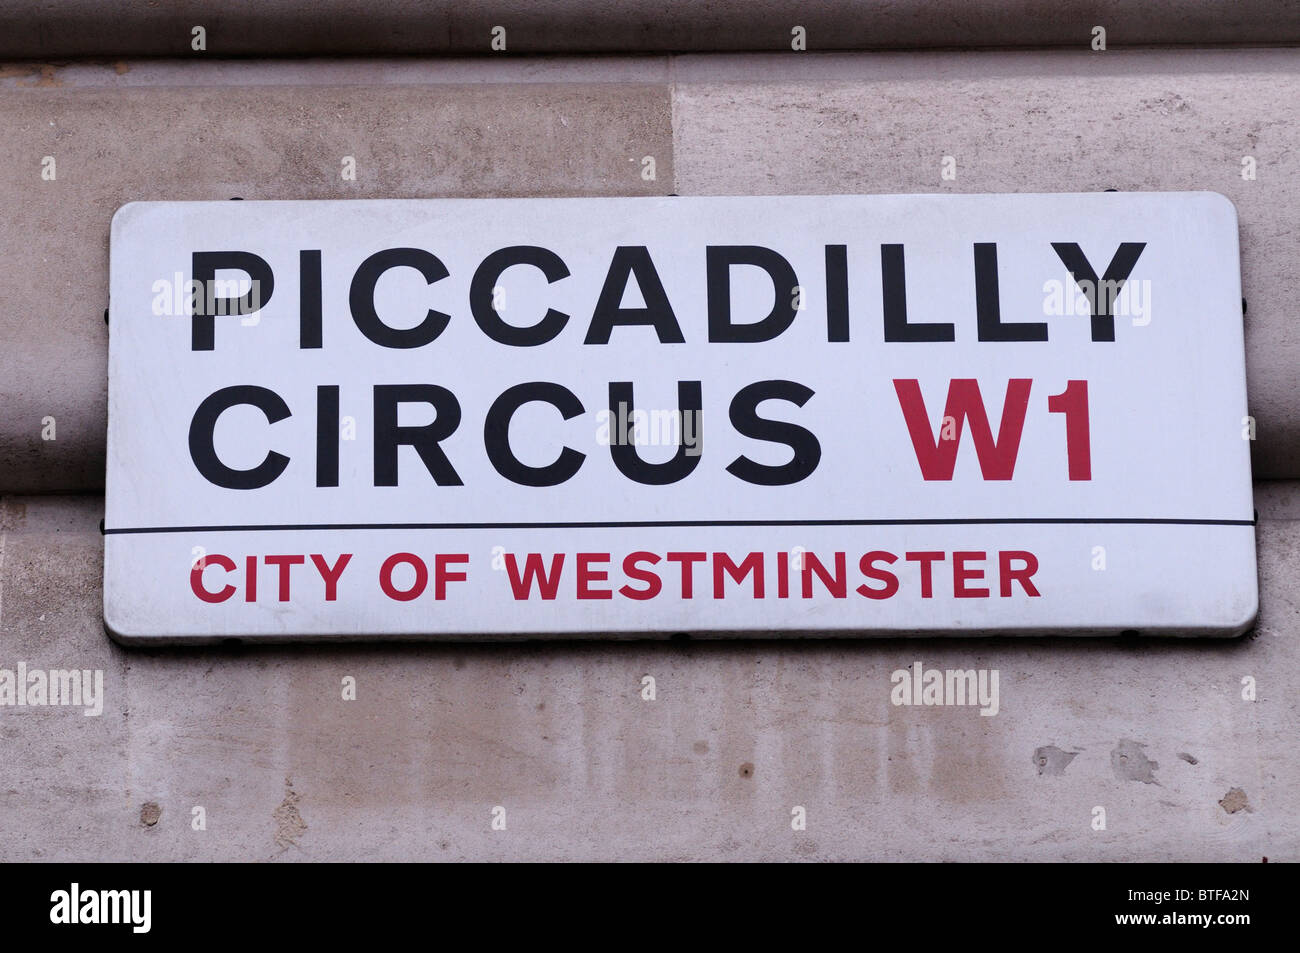 Piccadilly Circus W1 City of Westminster Street Sign, London, England, UK - Stock Image